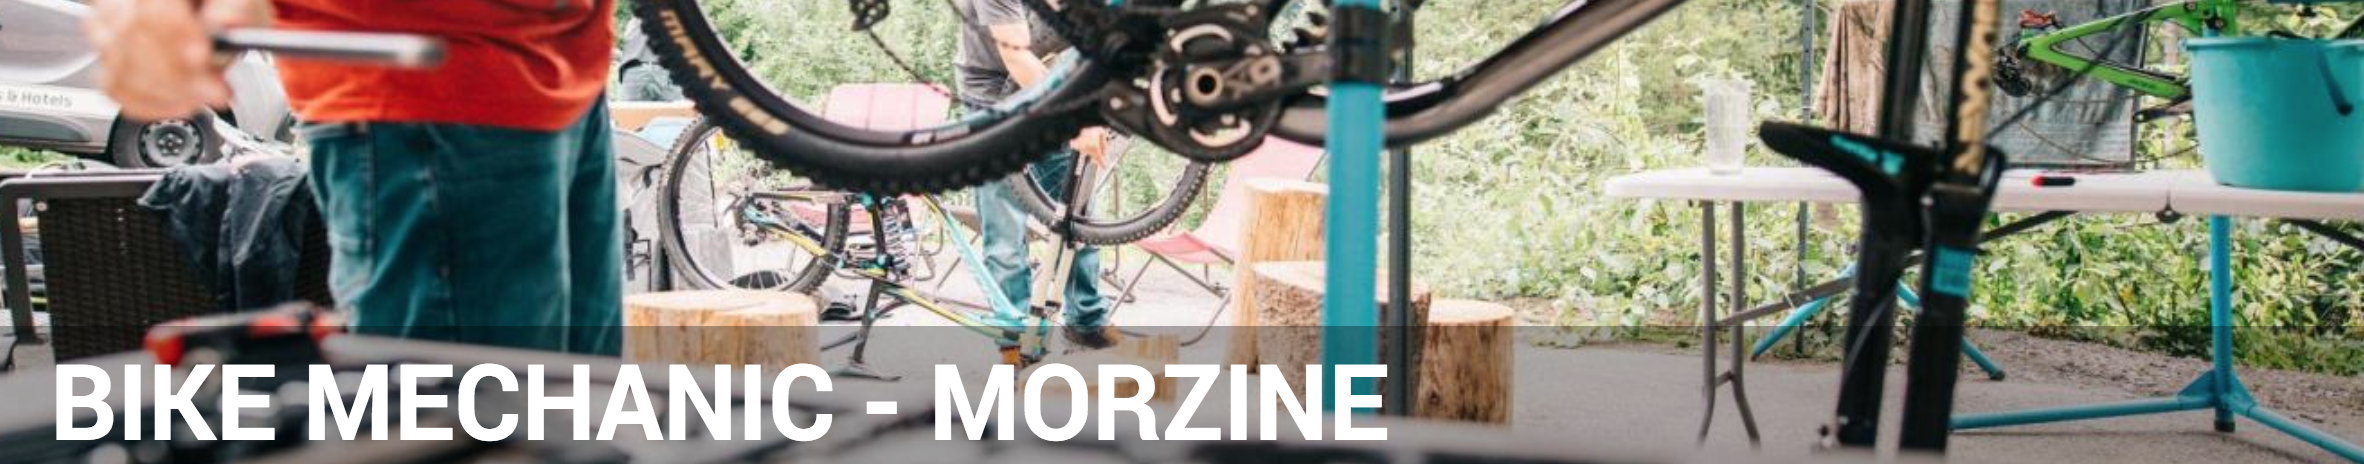 BIKE MECHANIC MORZINE